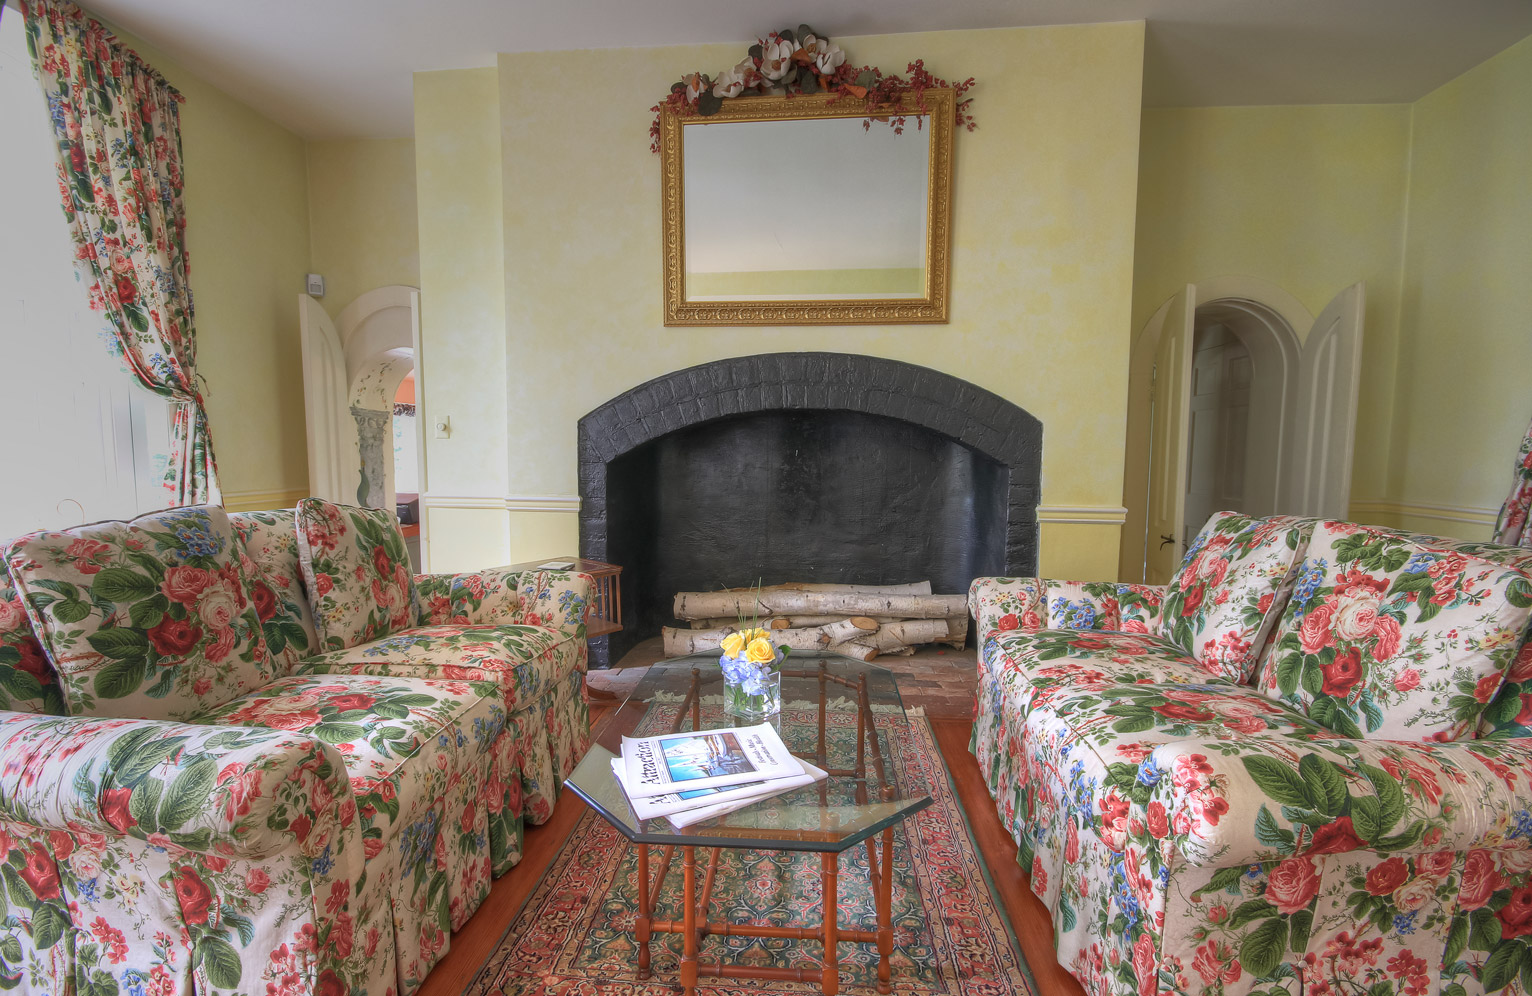 two couches and table in middle in front of fireplace in main sitting room combsberry inn